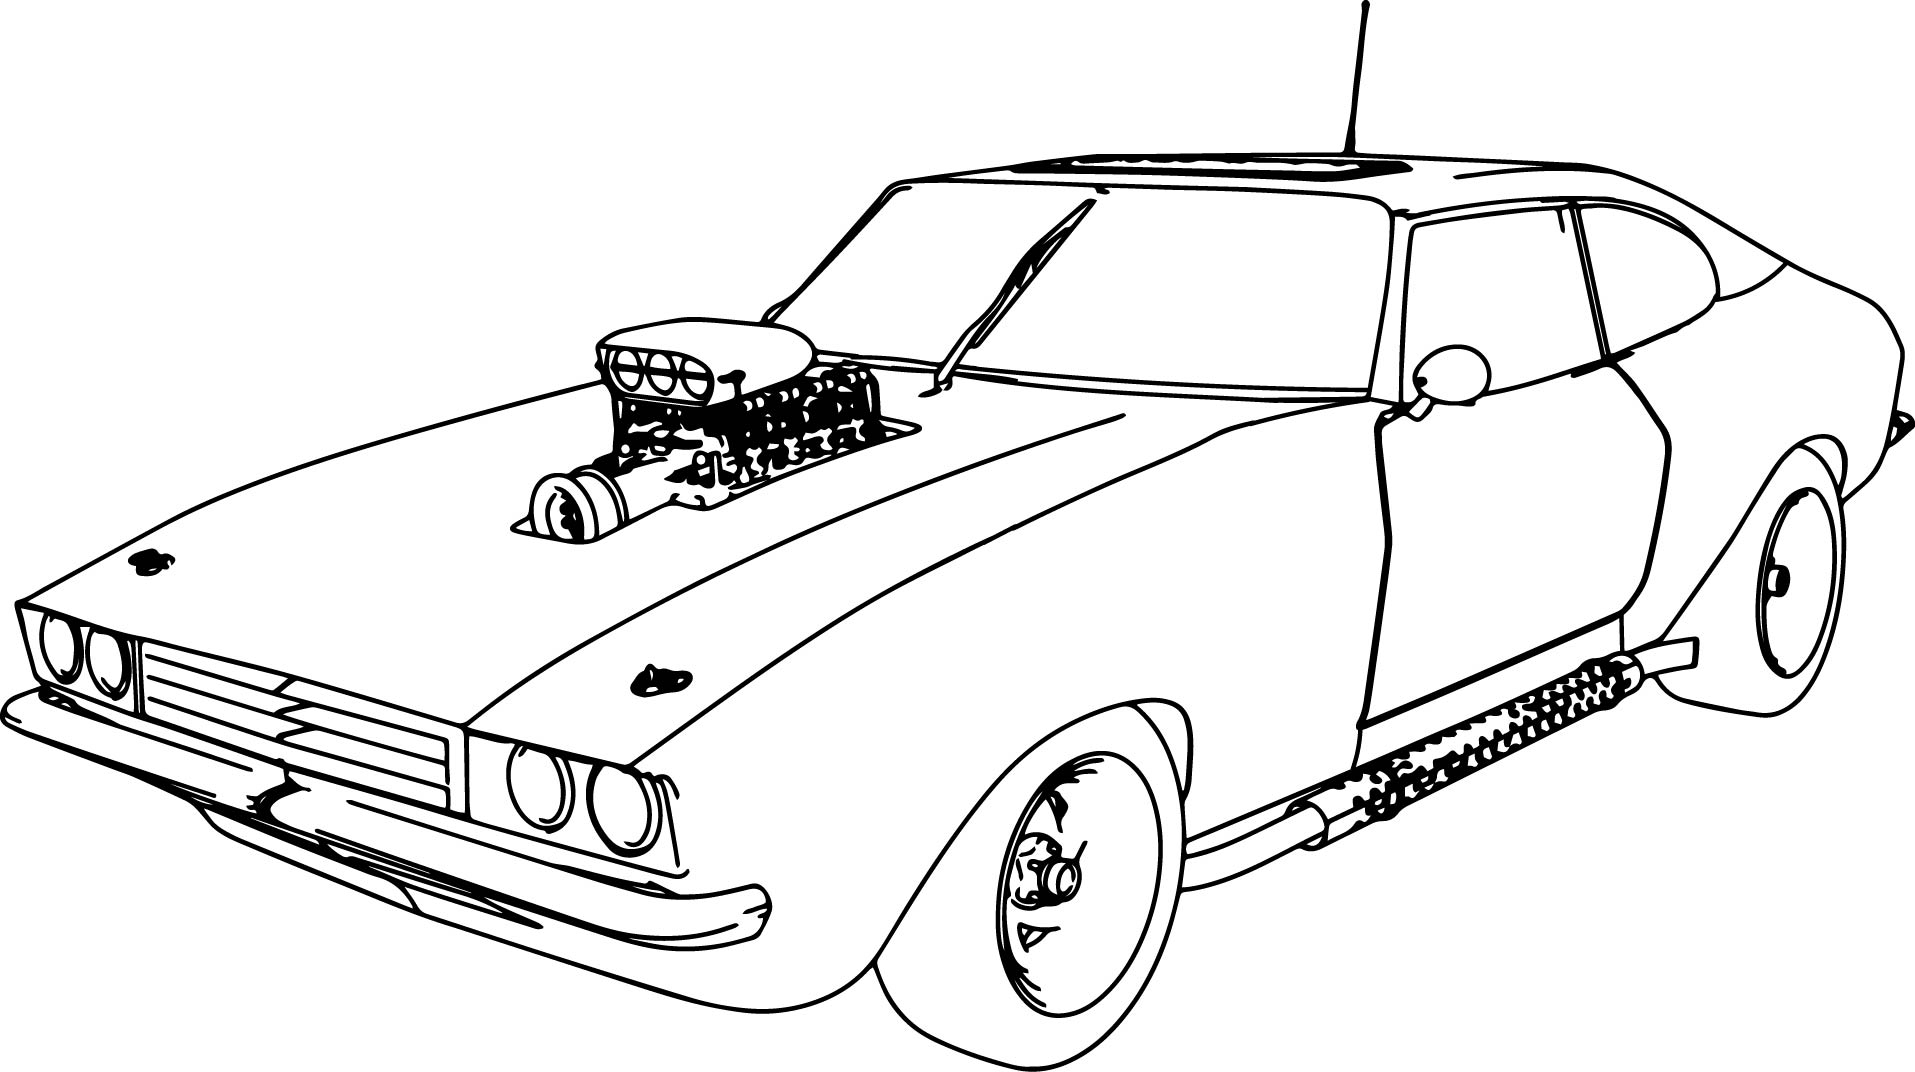 1915x1072 Muscle Car Coloring Pages Download